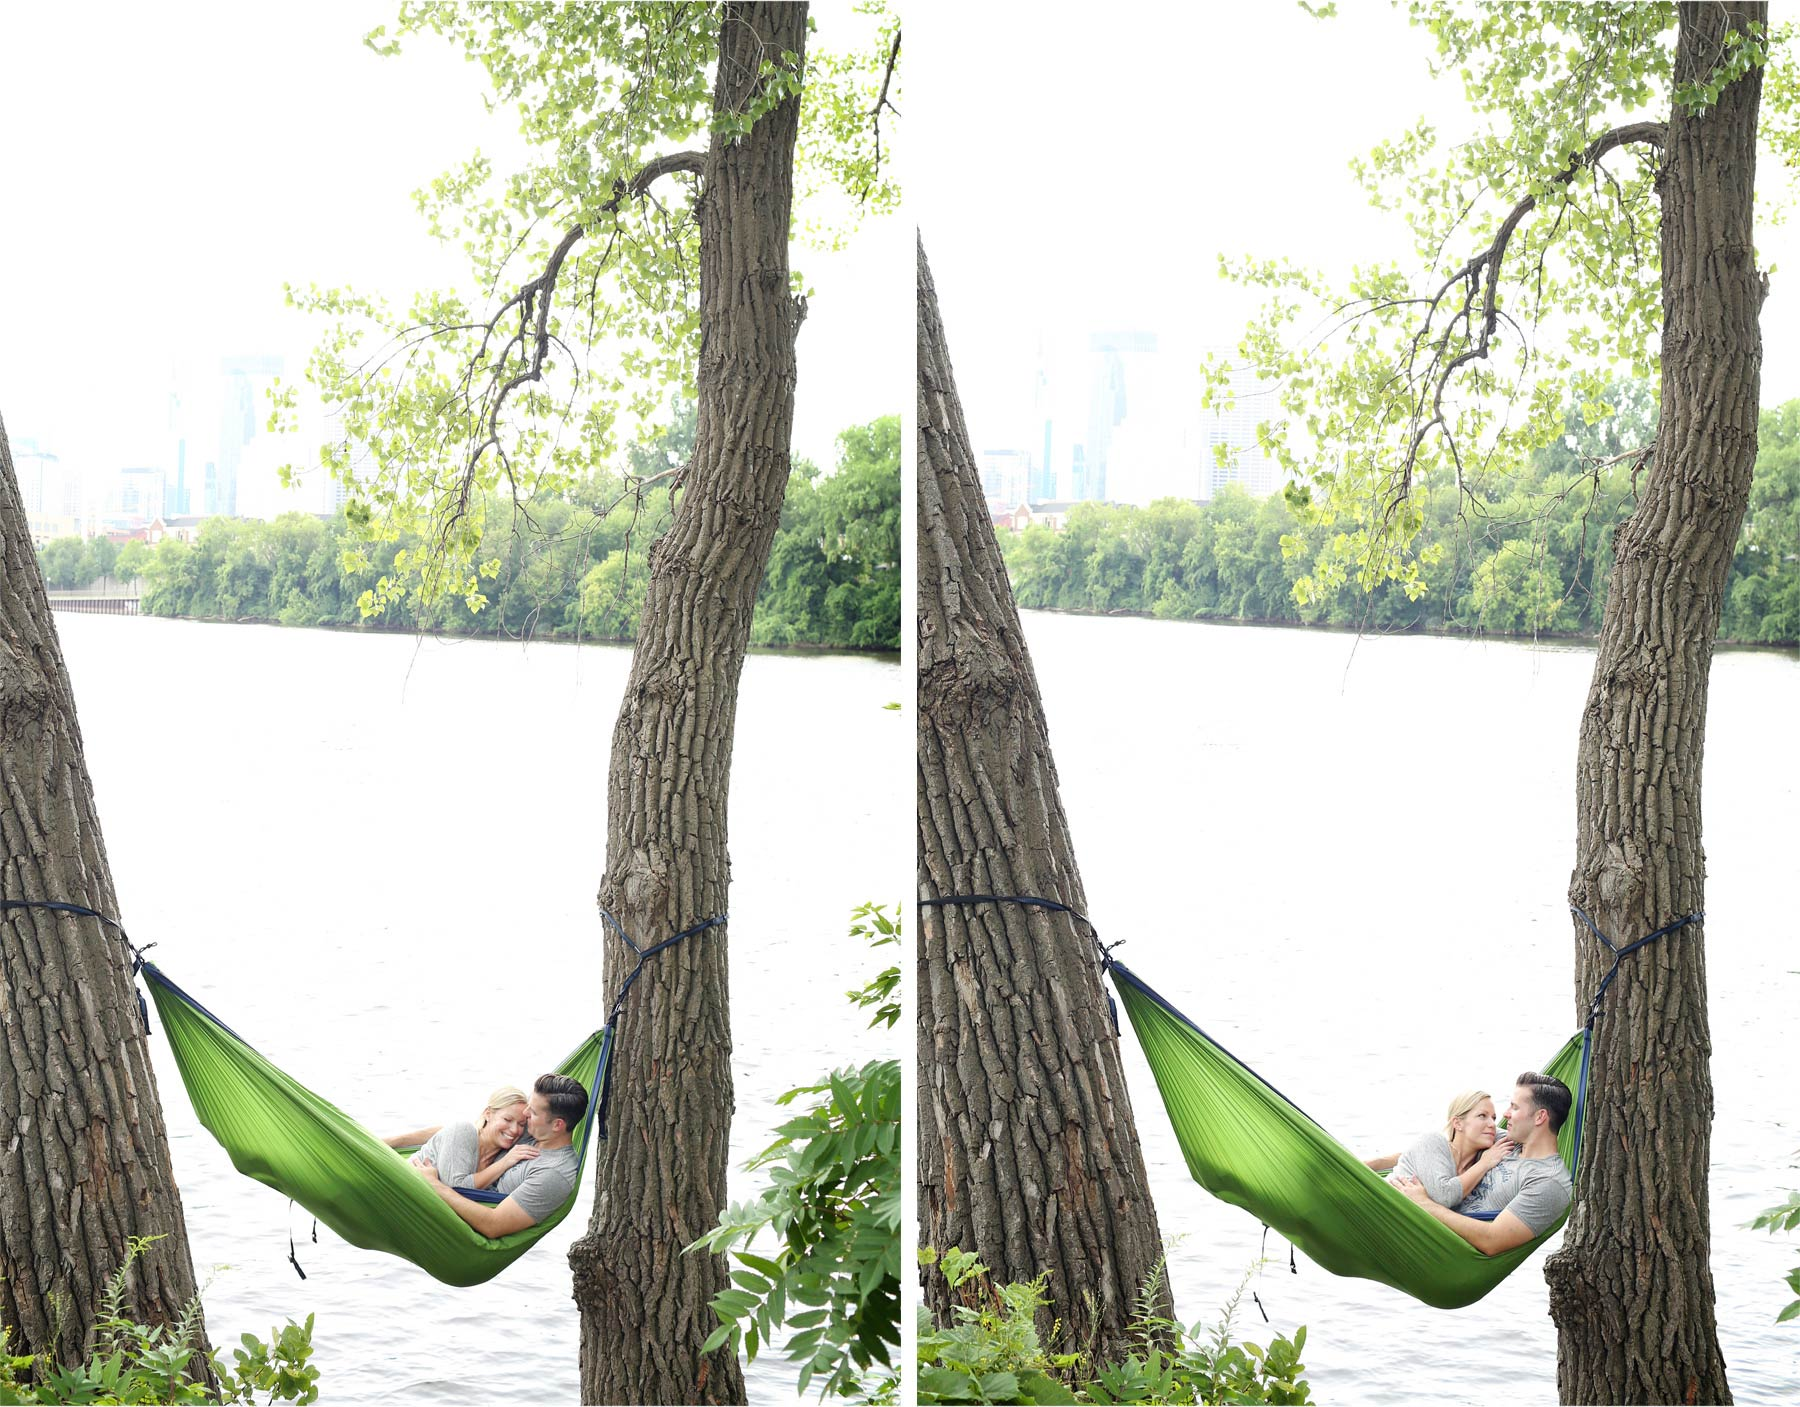 11-Minneapolis-Minnesota-Engagement-Photographer-by-Andrew-Vick-Photography-Summer-Mississippi-River-Hammock-Embrace-Cuddling-Tina-and-Kevin.jpg